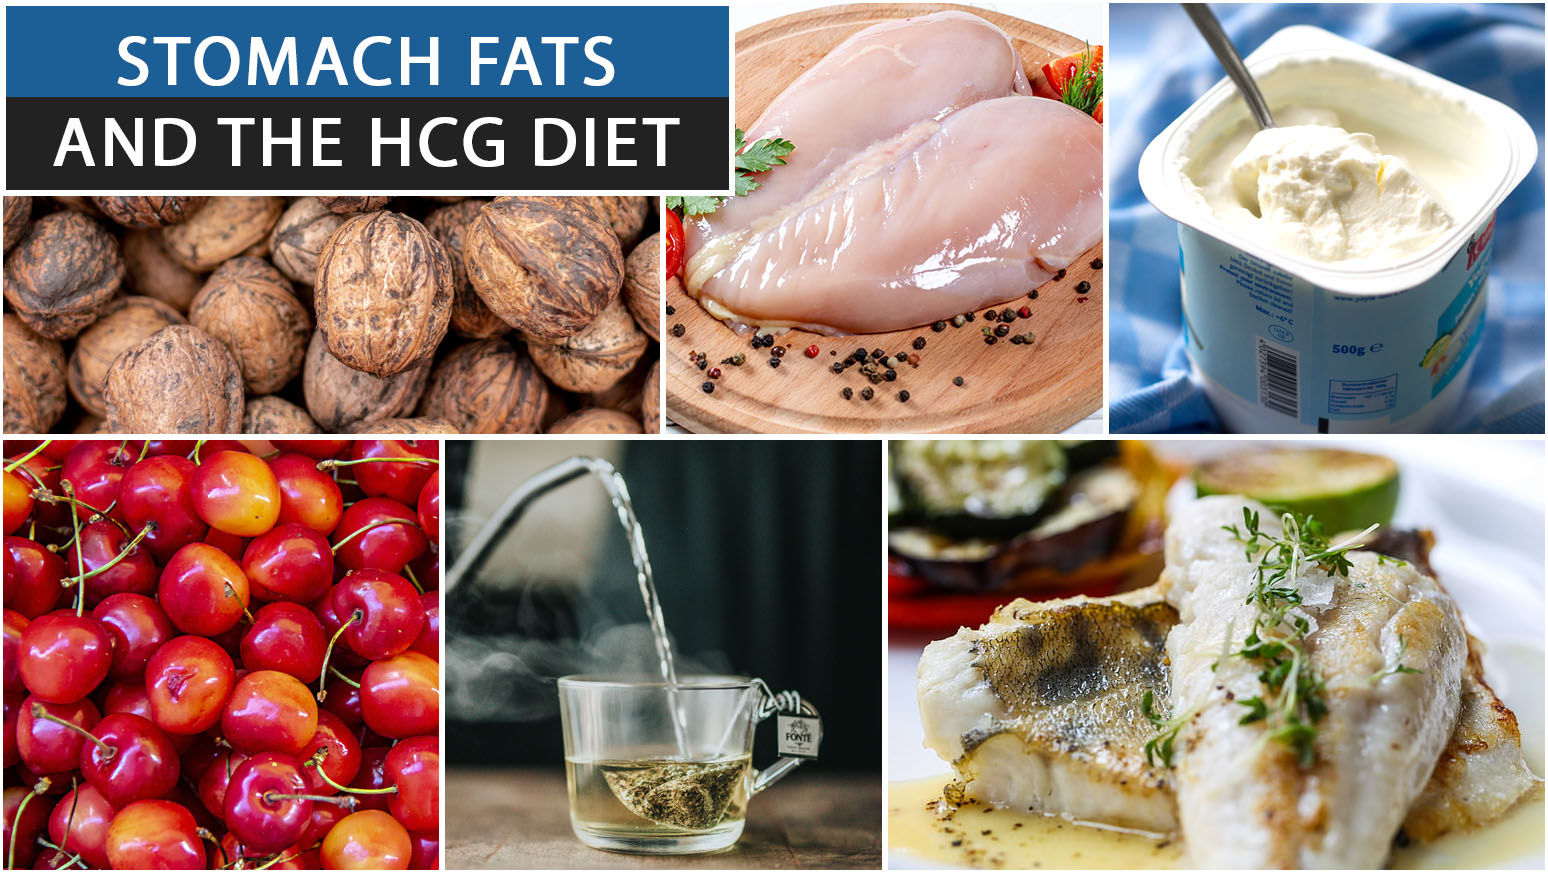 STOMACH FATS AND THE HCG DIET